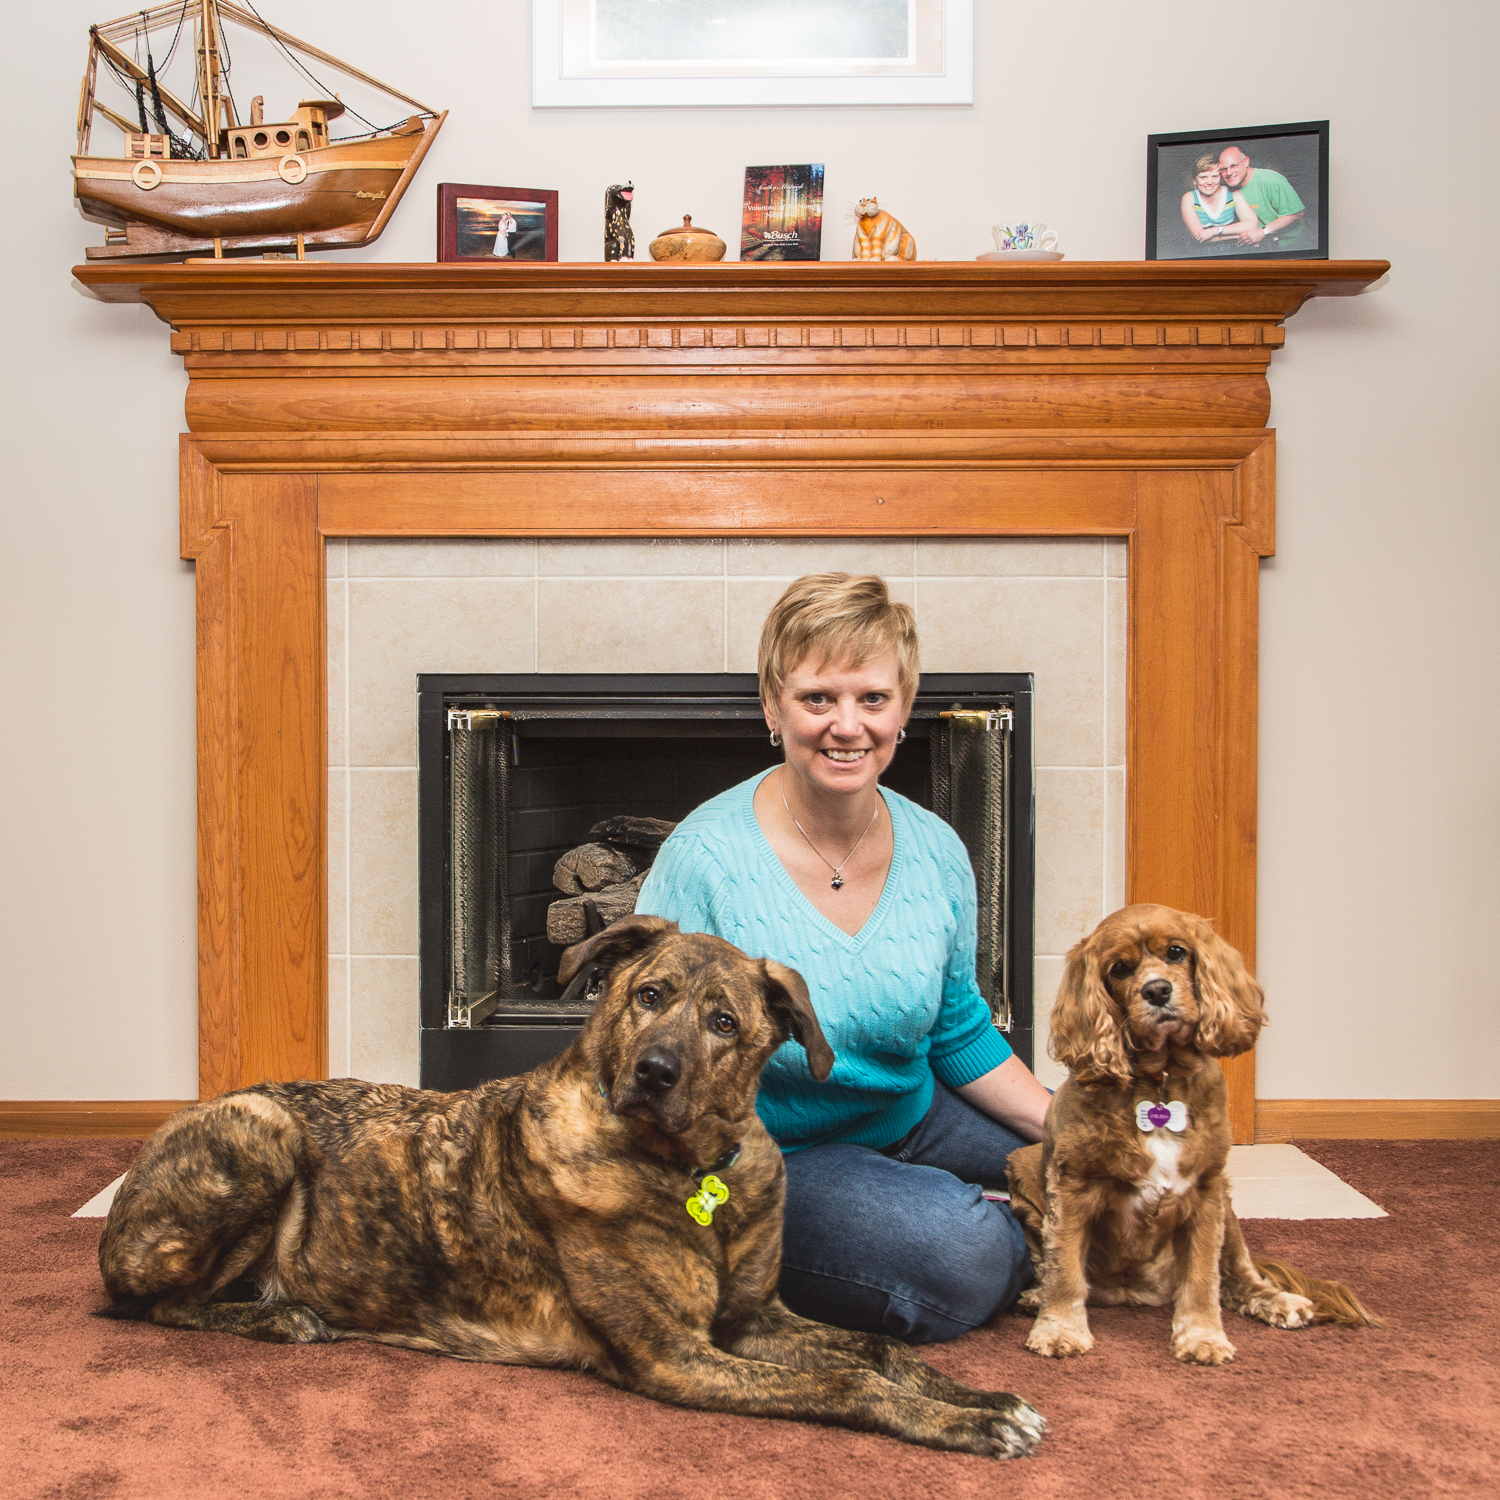 Cathleen Mutnick posing with her dogs